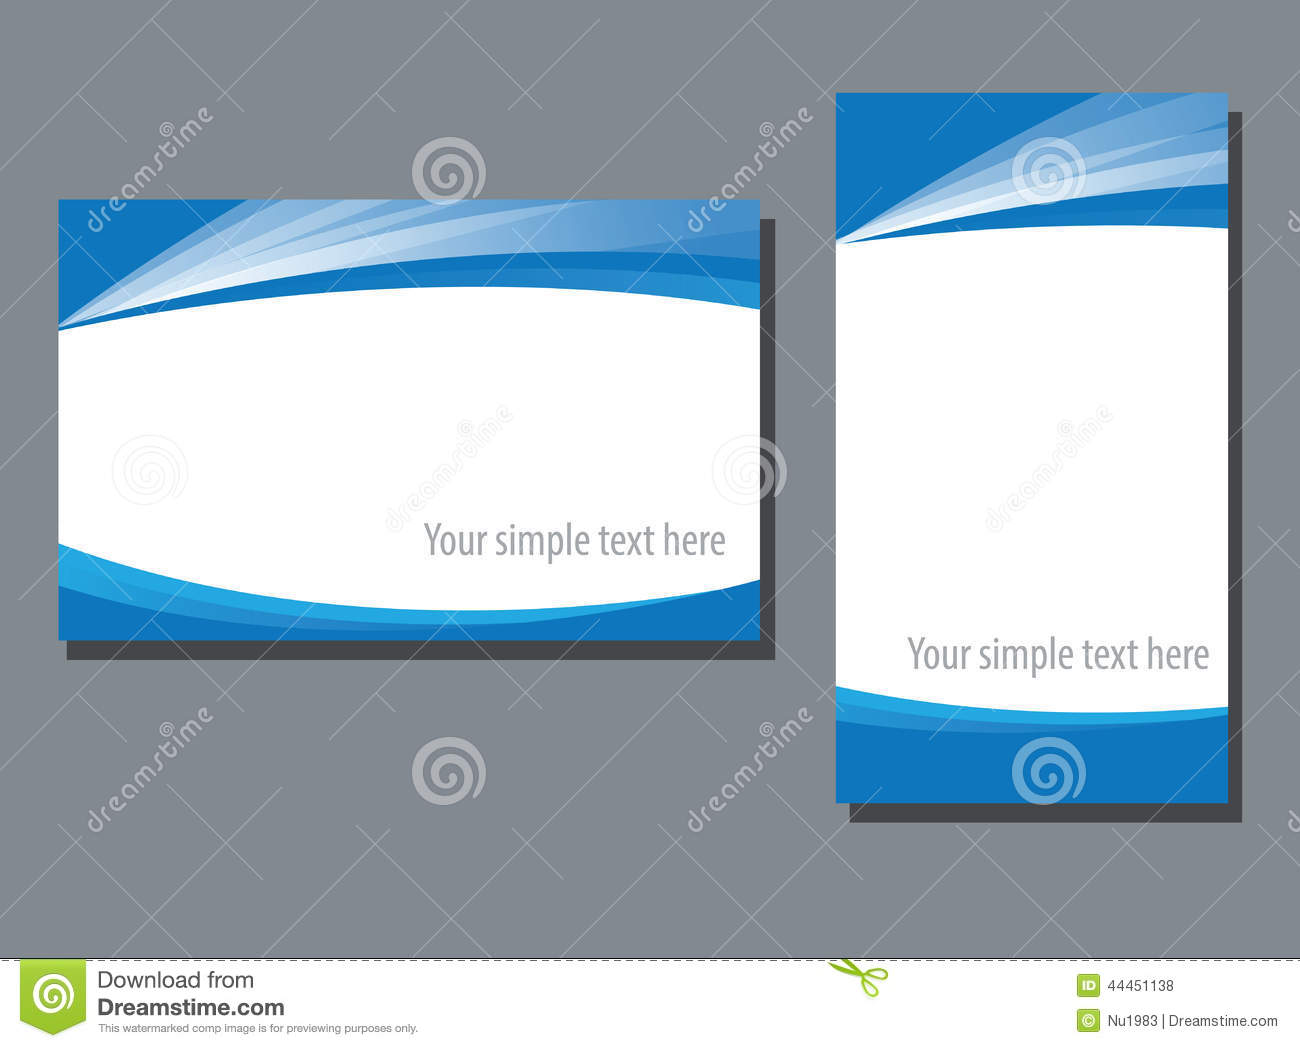 Business Name Card Template Stock Vector - Illustration of business ...